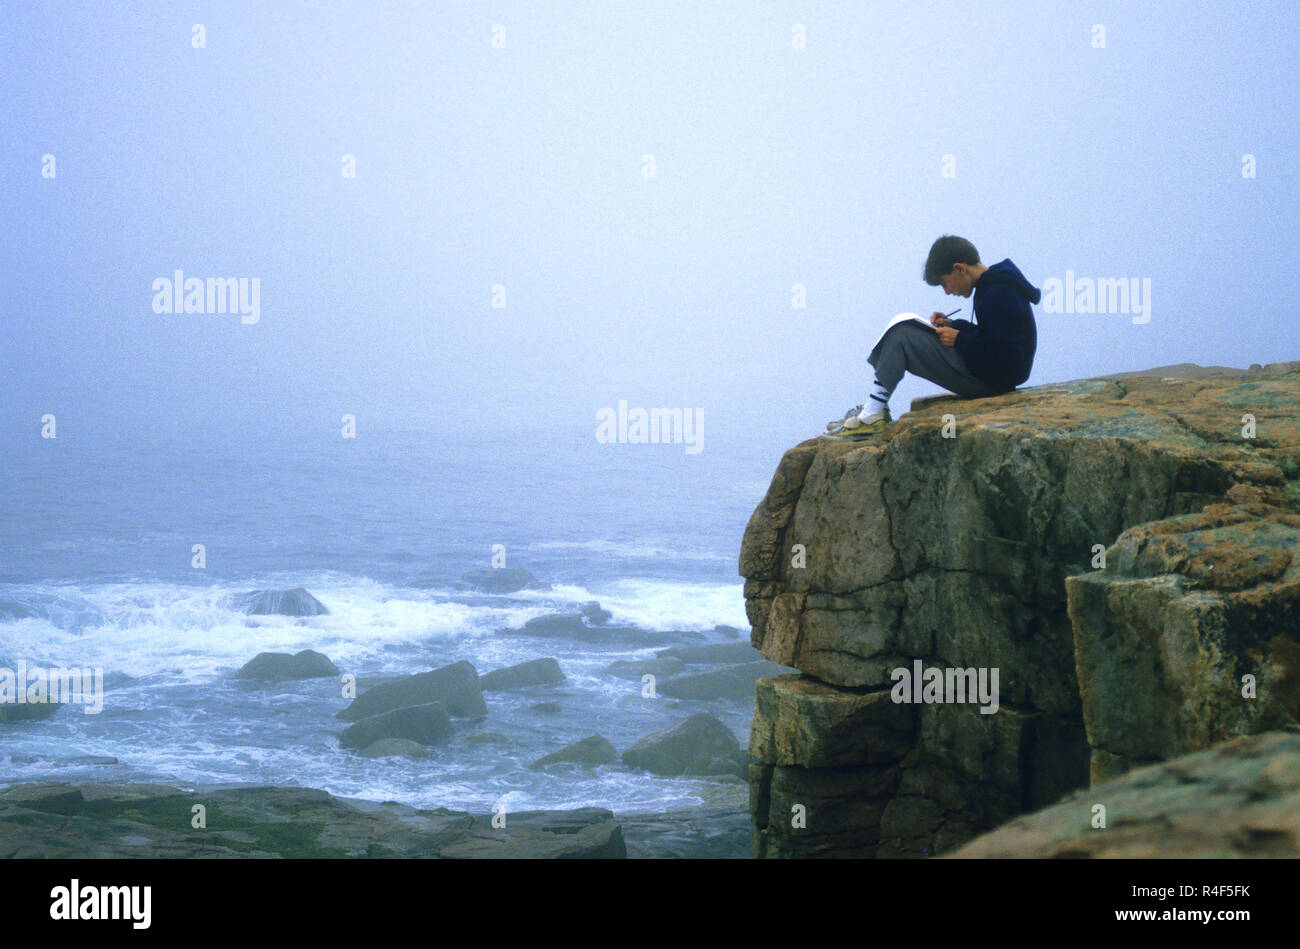 A young boy writing on the rocks of Acadia National Park, Maine, USA - Stock Image